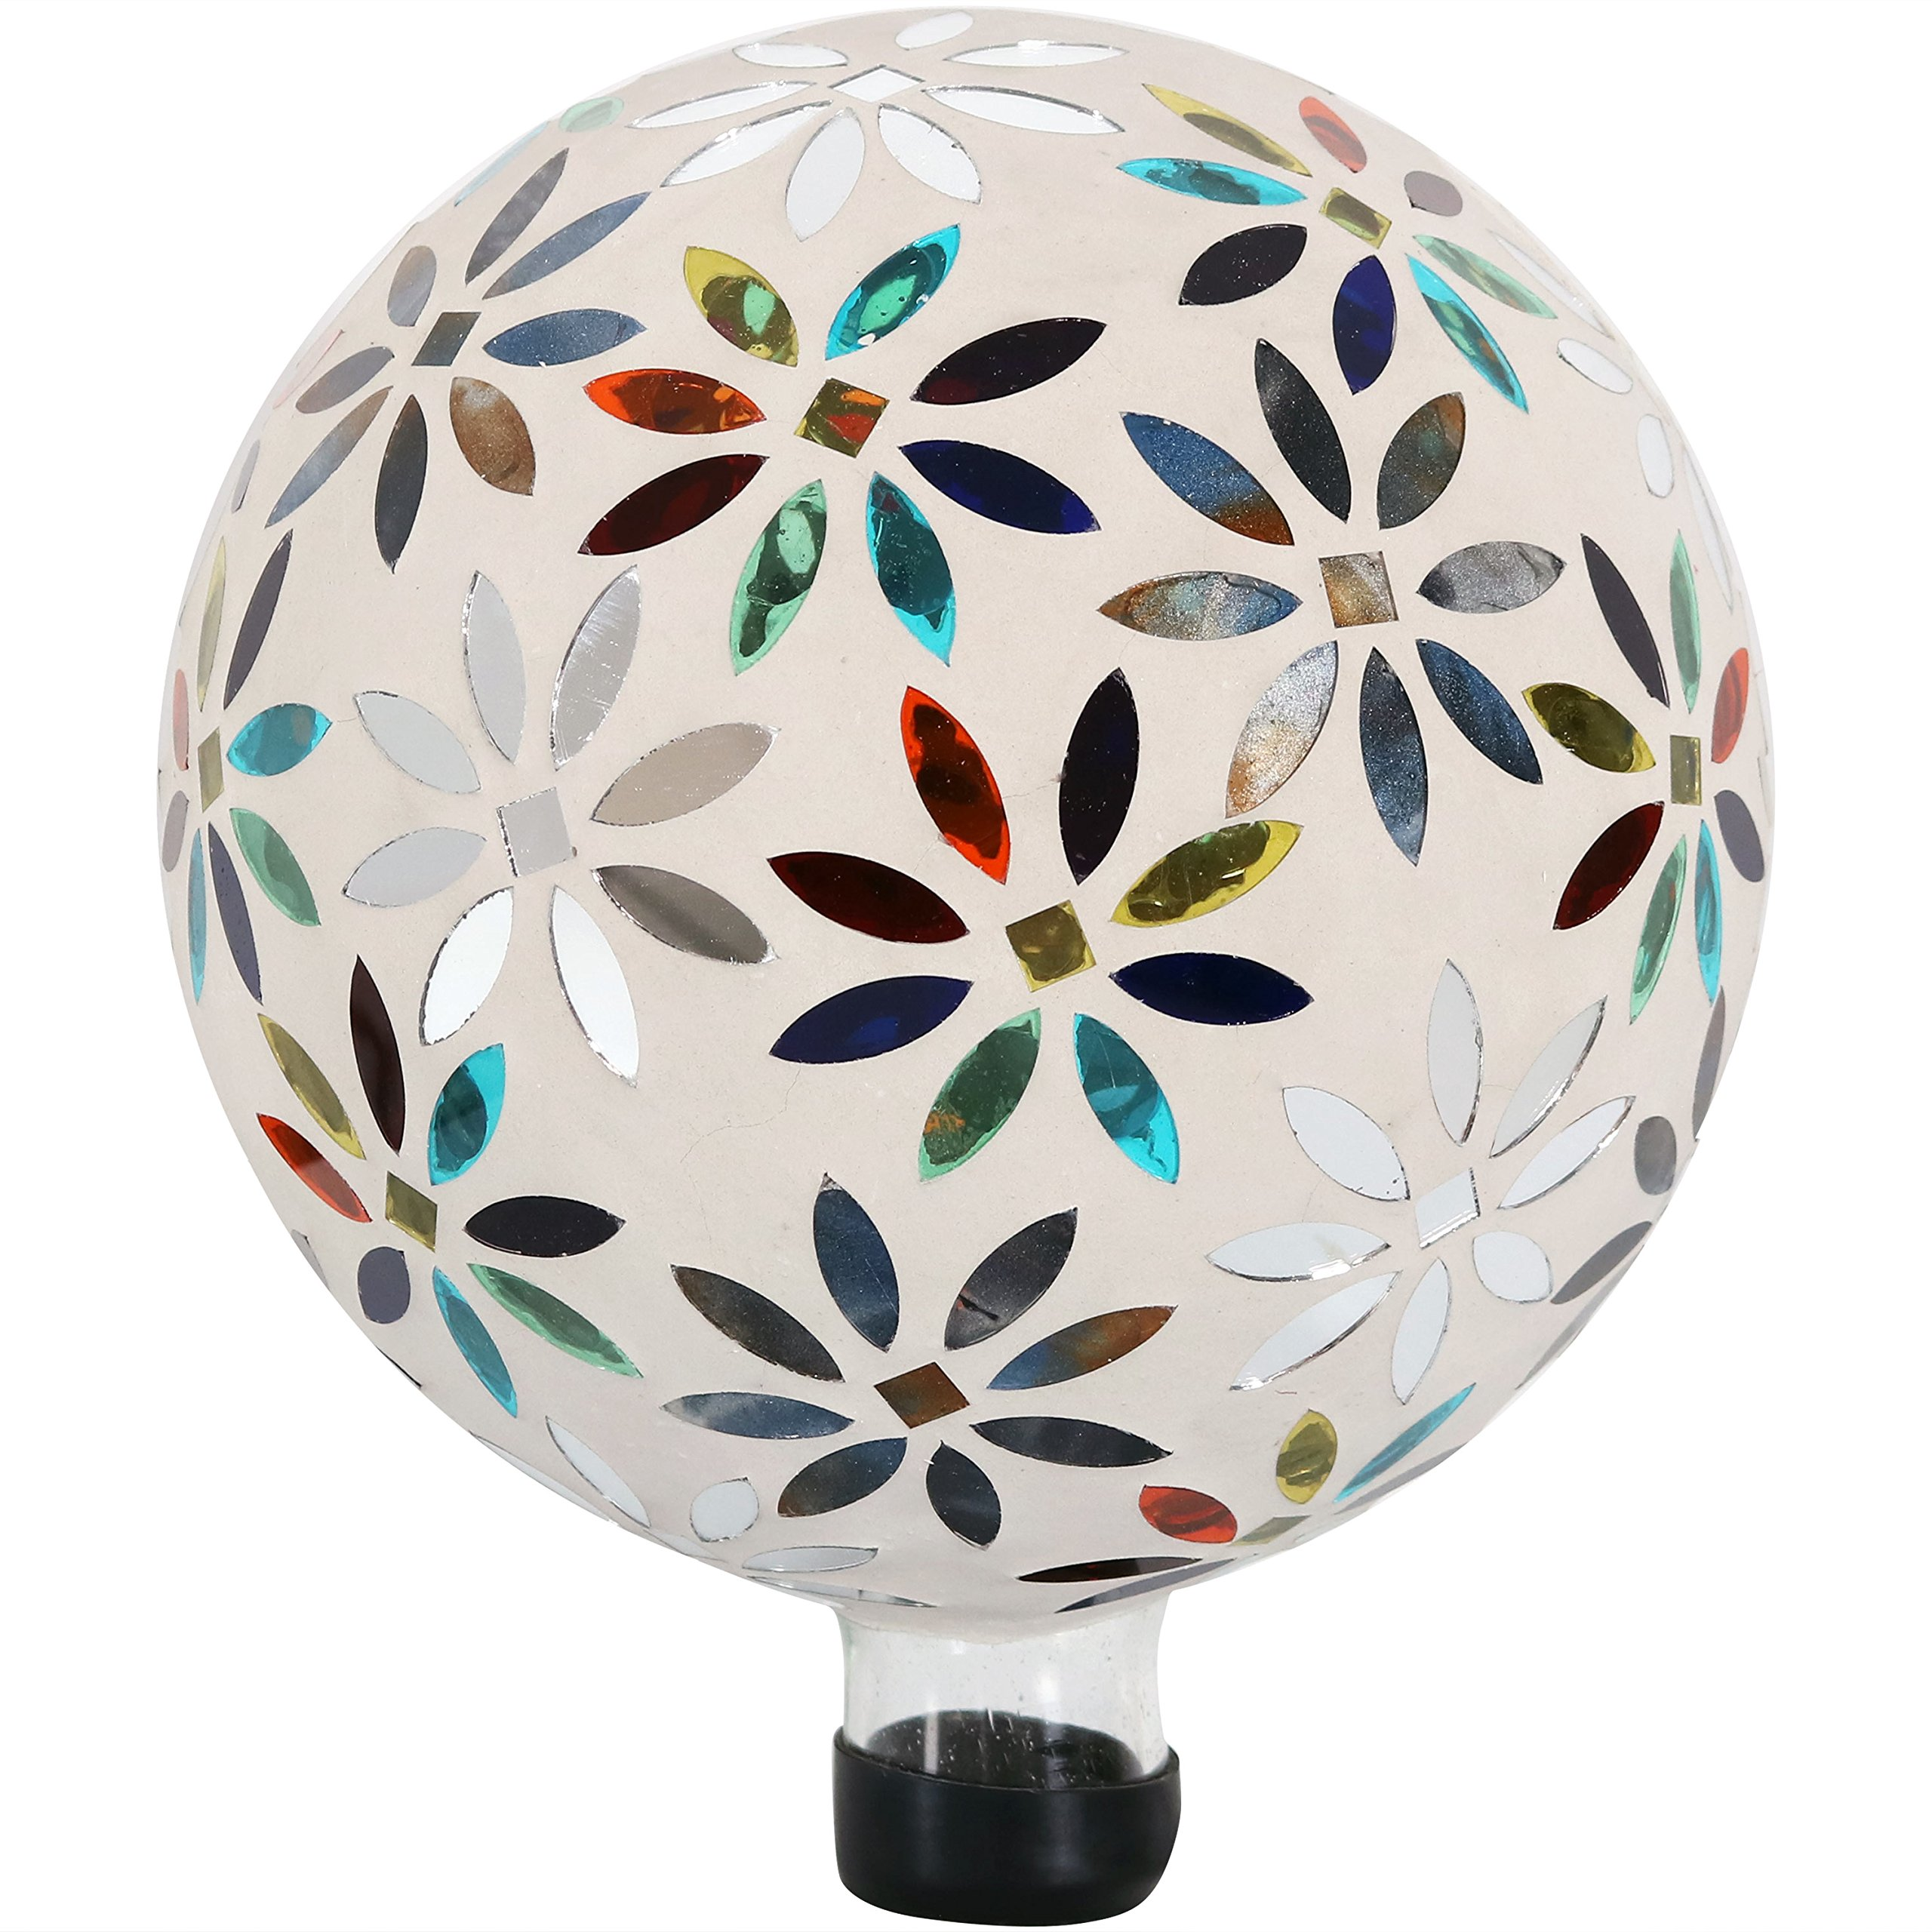 Sunnydaze Mosaic Flowers Gazing Globe Glass Garden Ball, Outdoor Lawn and Yard Ornament, Multi-Colored, 10-Inch